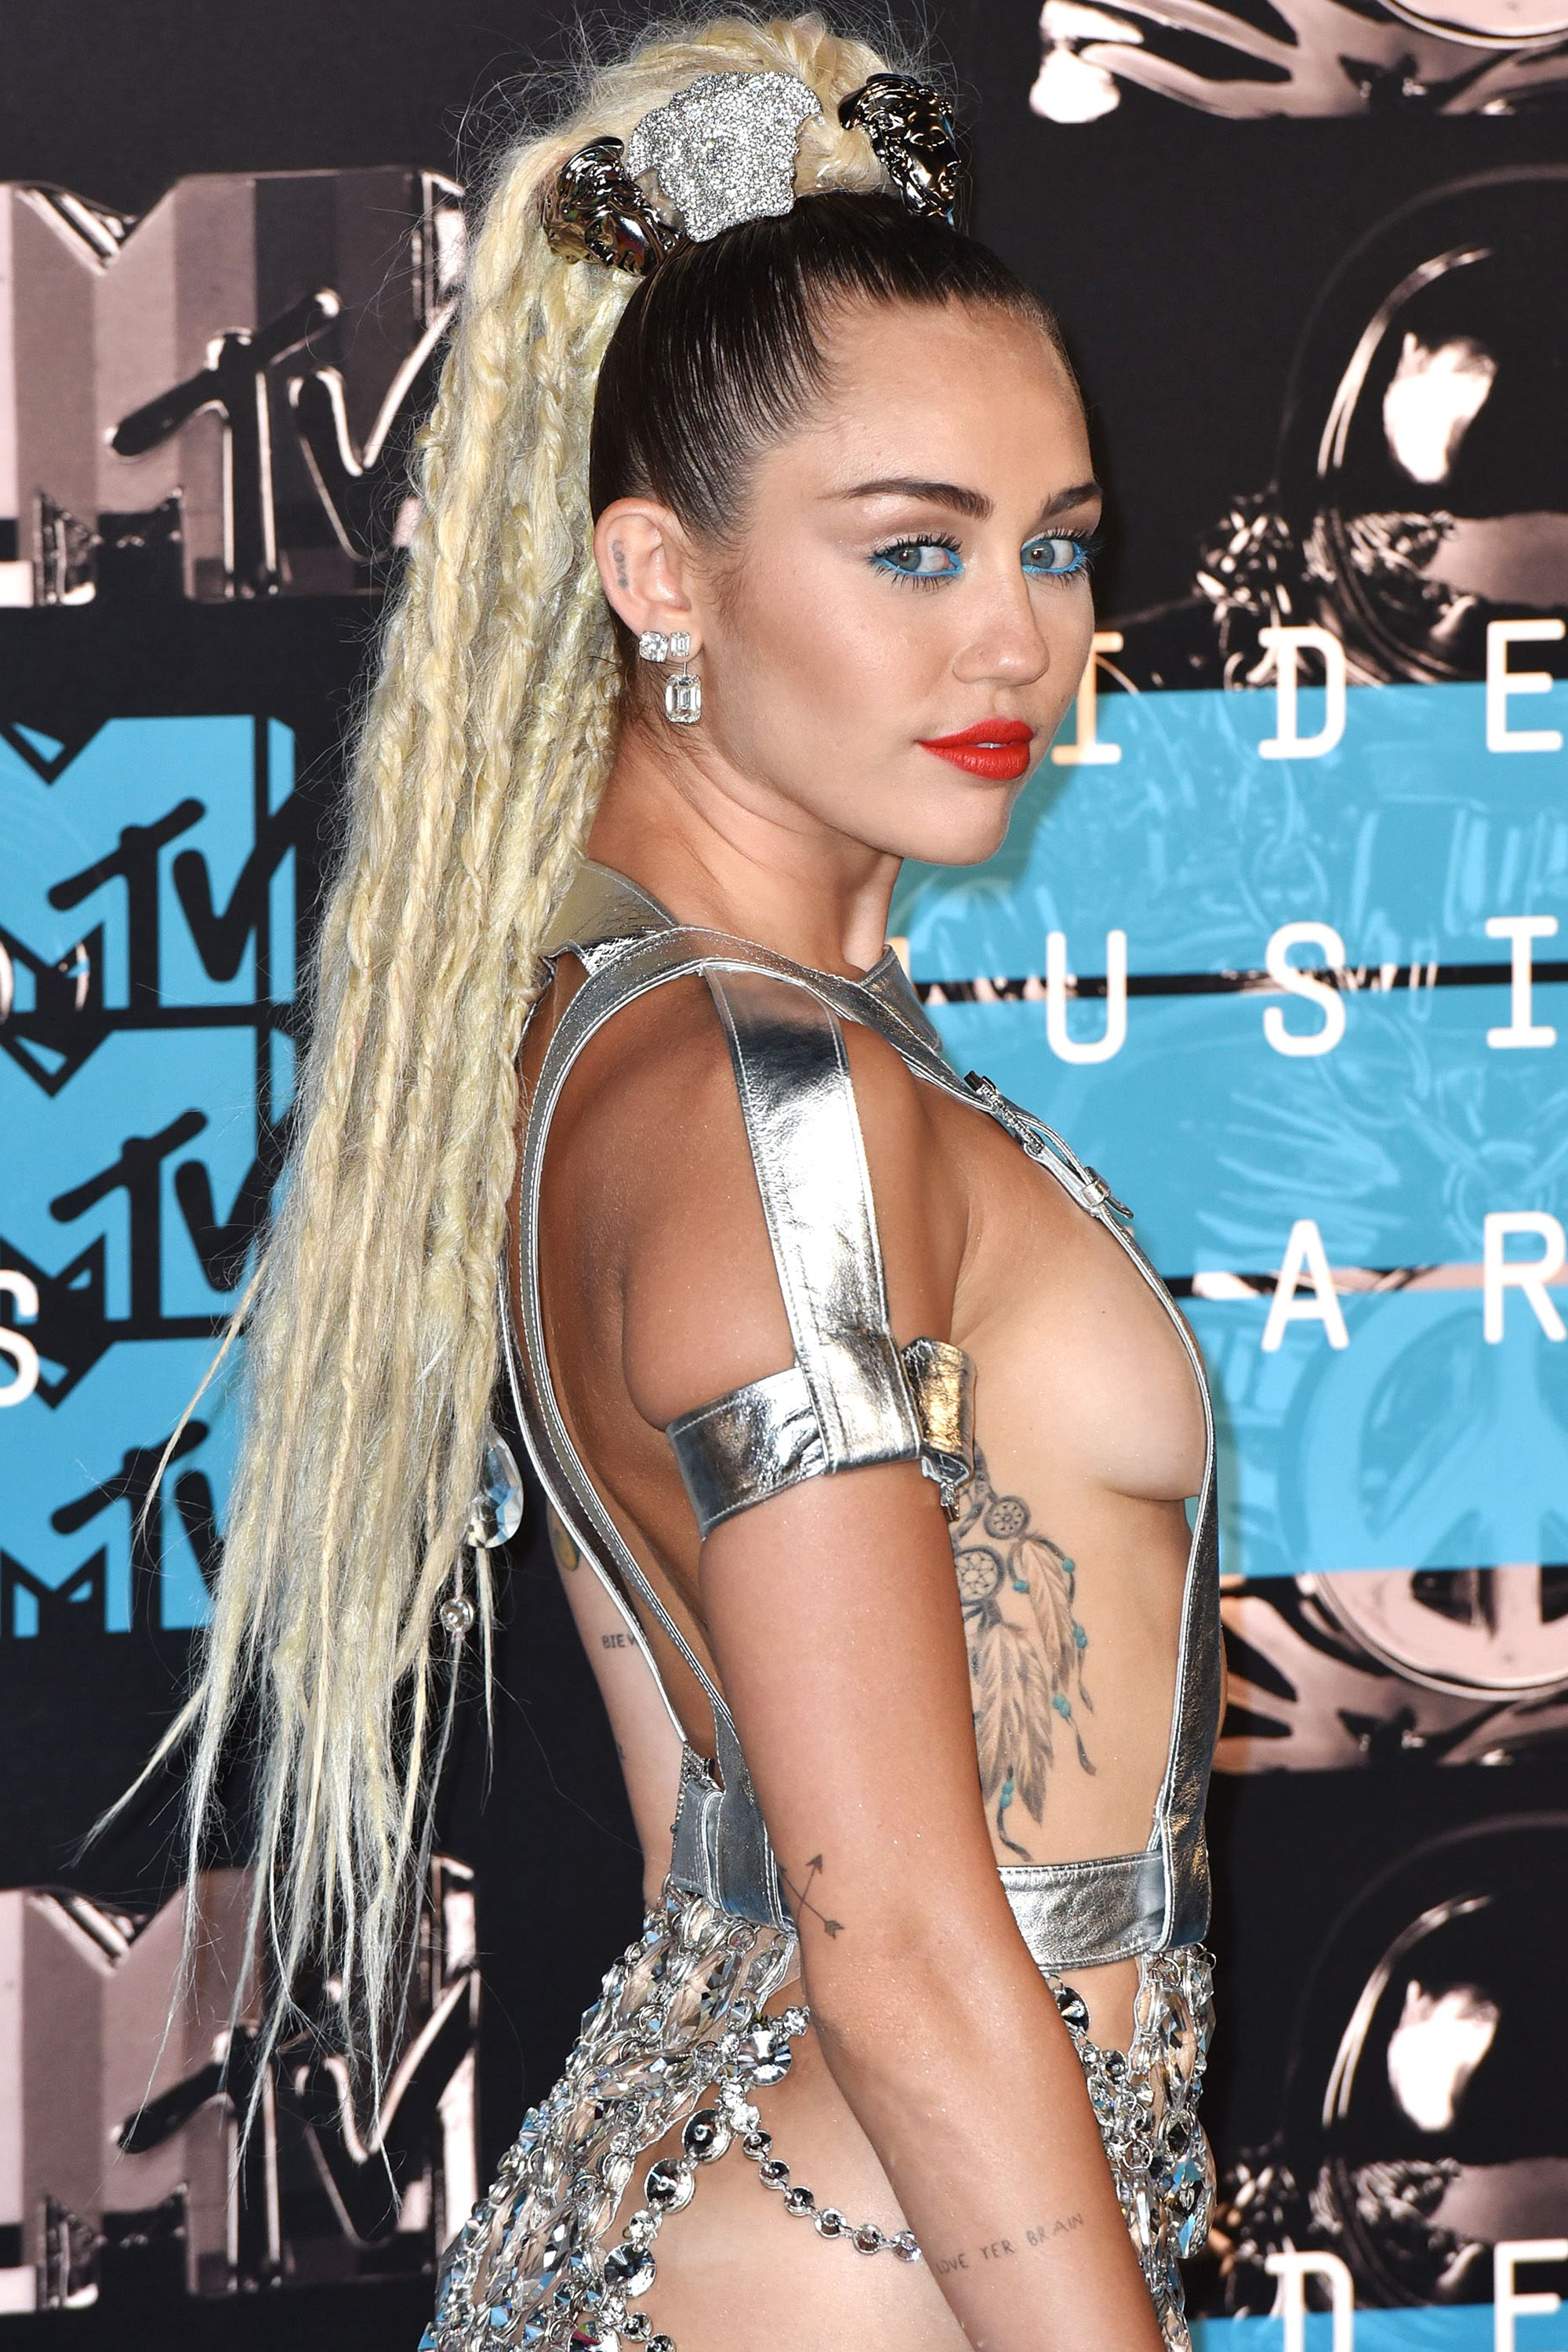 <p>Cyrus took her gig as host of the year's wildest awards show seriously, showing up nearly naked and with a heavy head of dreads that put her under fire. </p>